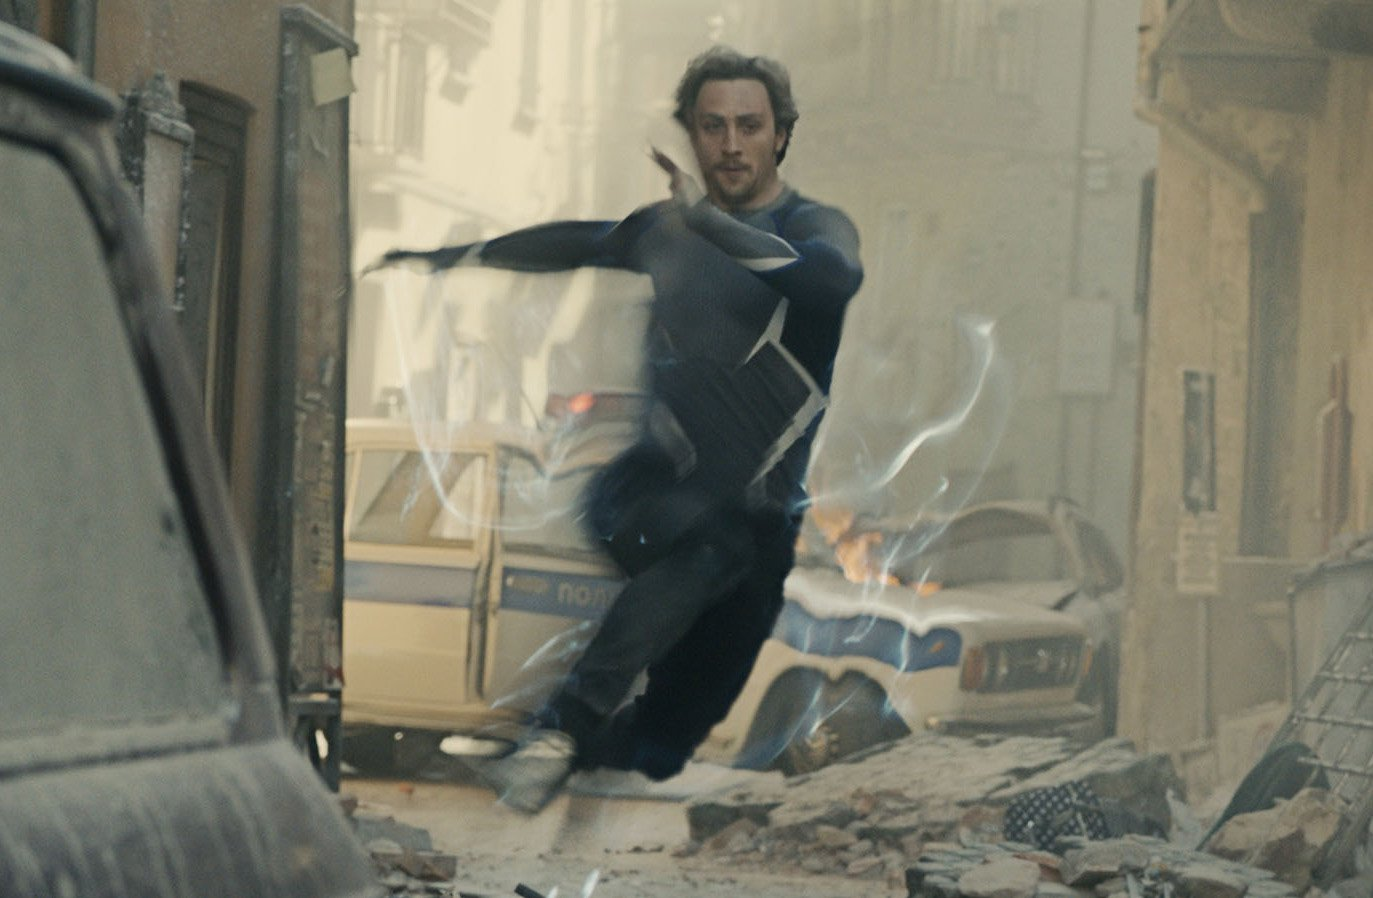 Editorial use only. No book cover usage. Mandatory Credit: Photo by Marvel/Walt Disney Pictures/Kobal/REX/Shutterstock (5886283ci) Aaron Taylor-Johnson Avengers - Age Of Ultron - 2015 Director: Joss Whedon Marvel/Walt Disney Pictures USA Scene Still Action/Adventure Avengers: L'??re d'Ultron